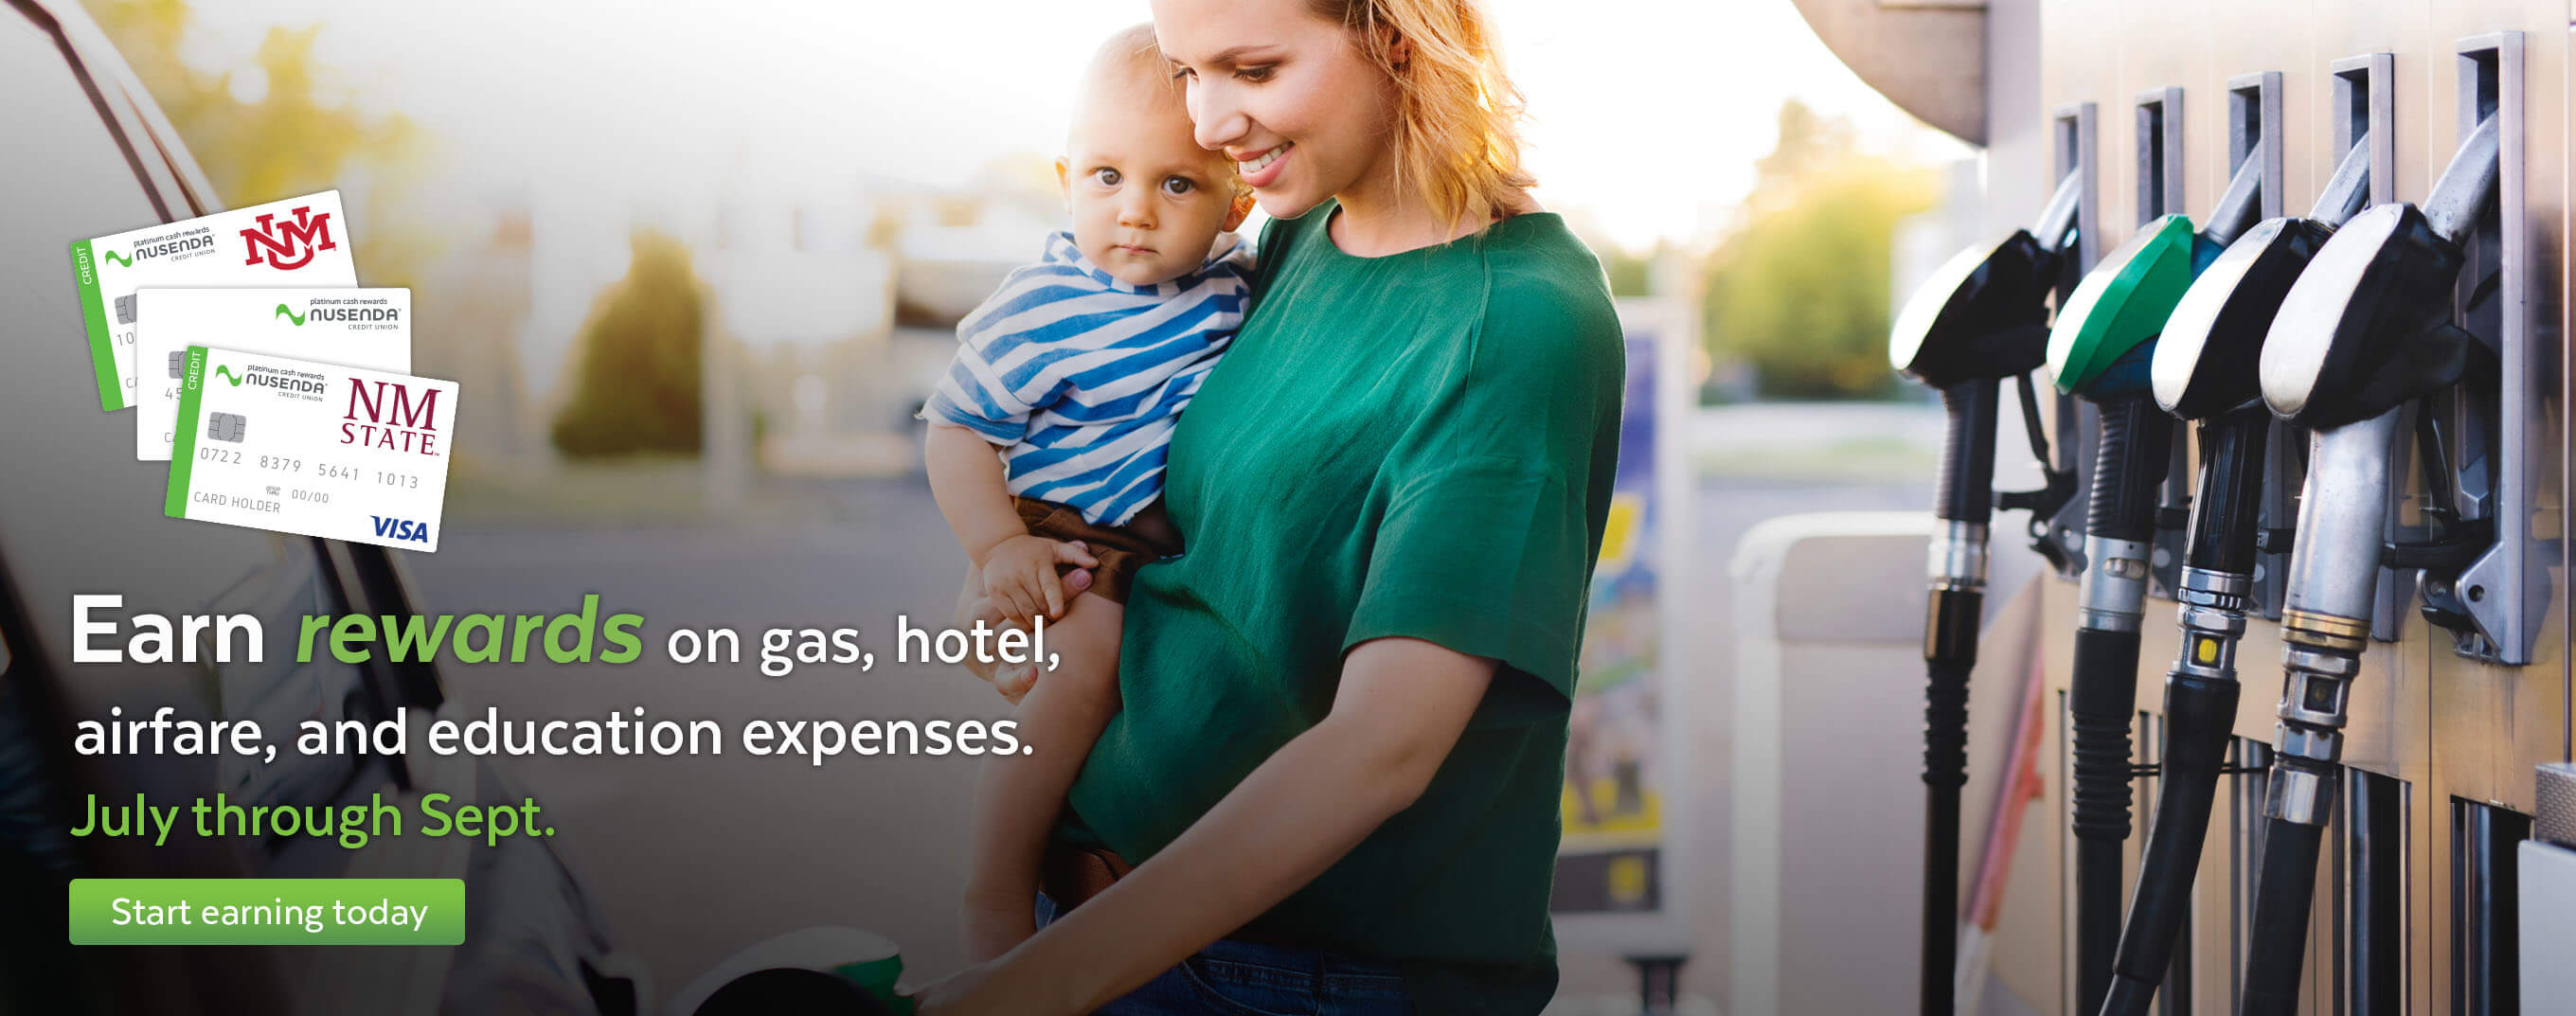 Earn rewards on gas, hotel, airfare, and education expenses now through September.